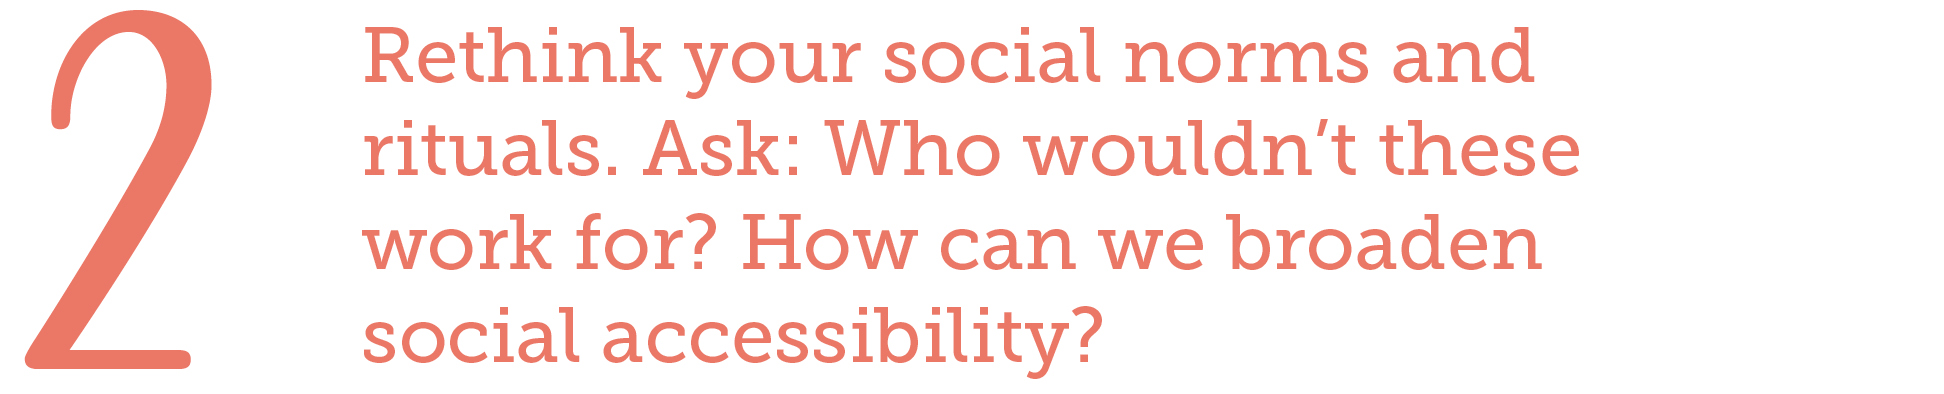 2. Rethink your social norms and rituals. Ask: Who wouldn't these work for? How can we broaden social accessibility?